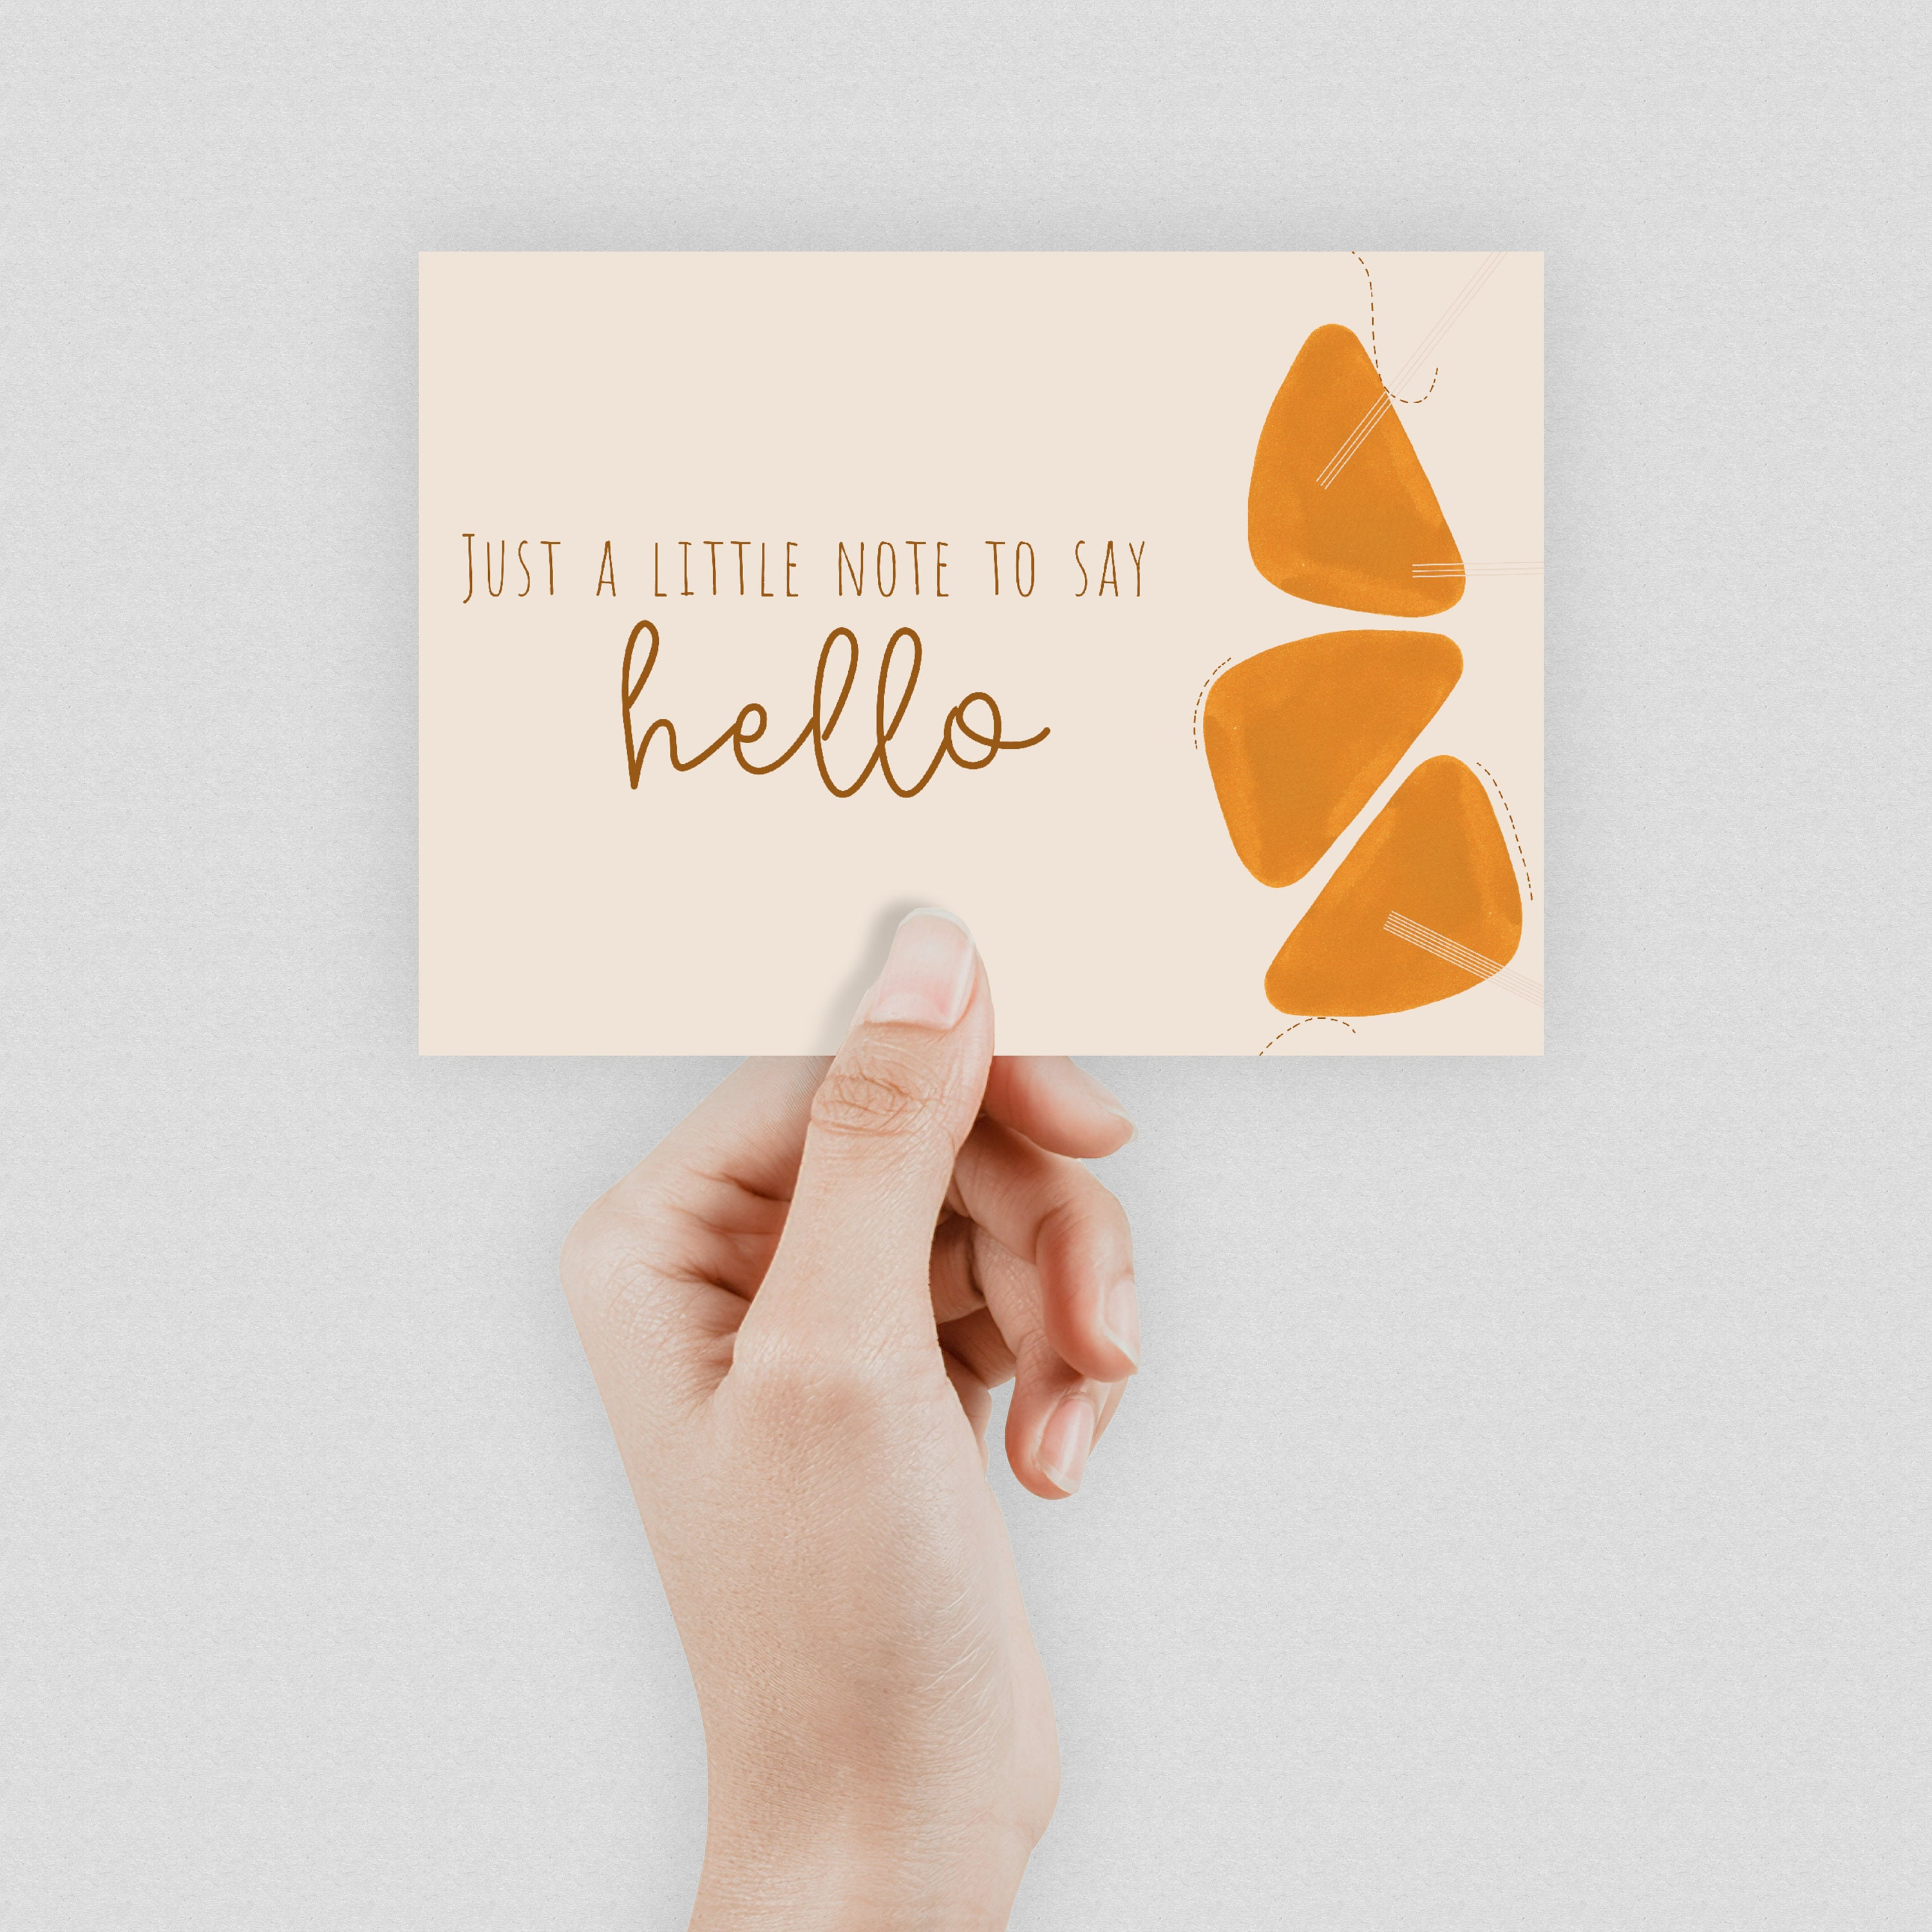 """A hand holding a cream postcard which says """"Just a little note to say hello""""."""